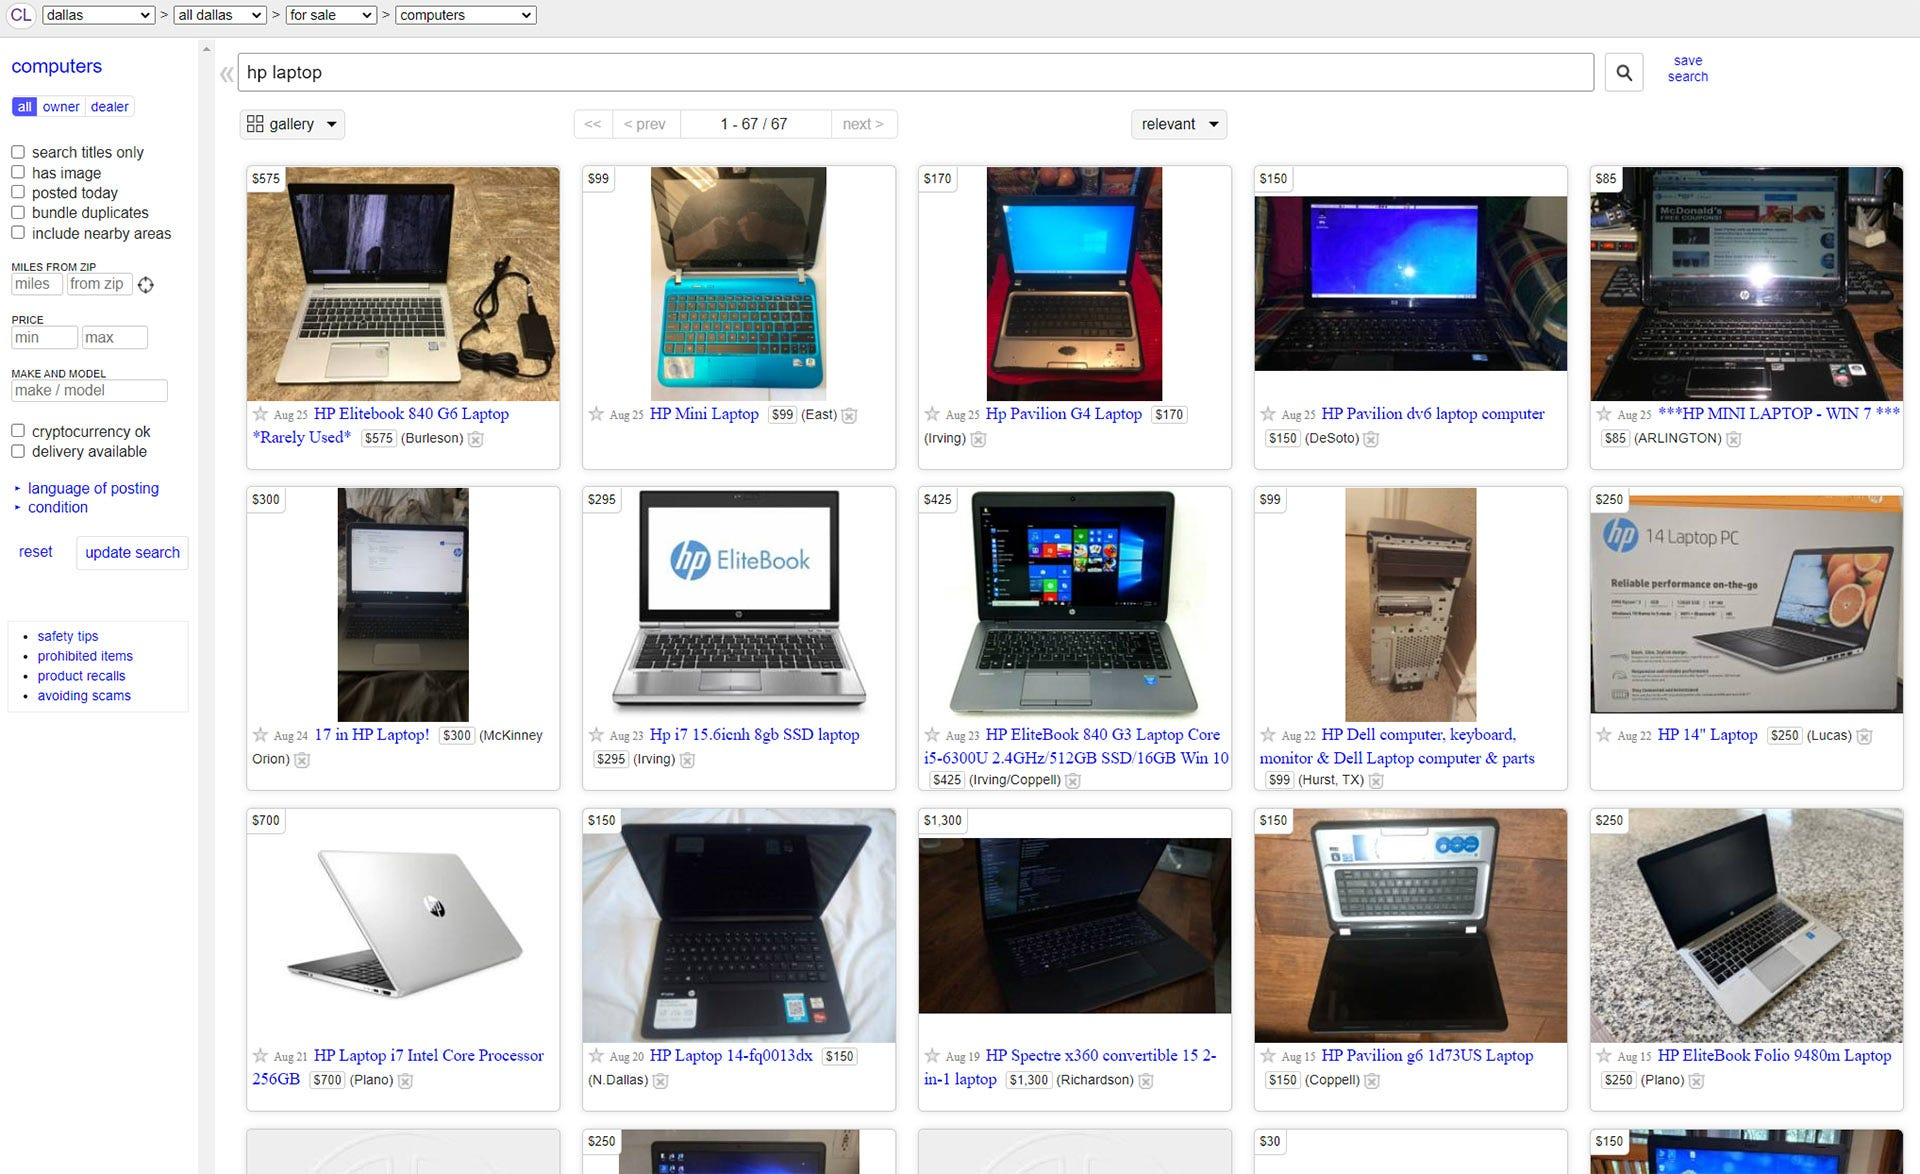 Craigslit page with laptops for sale.